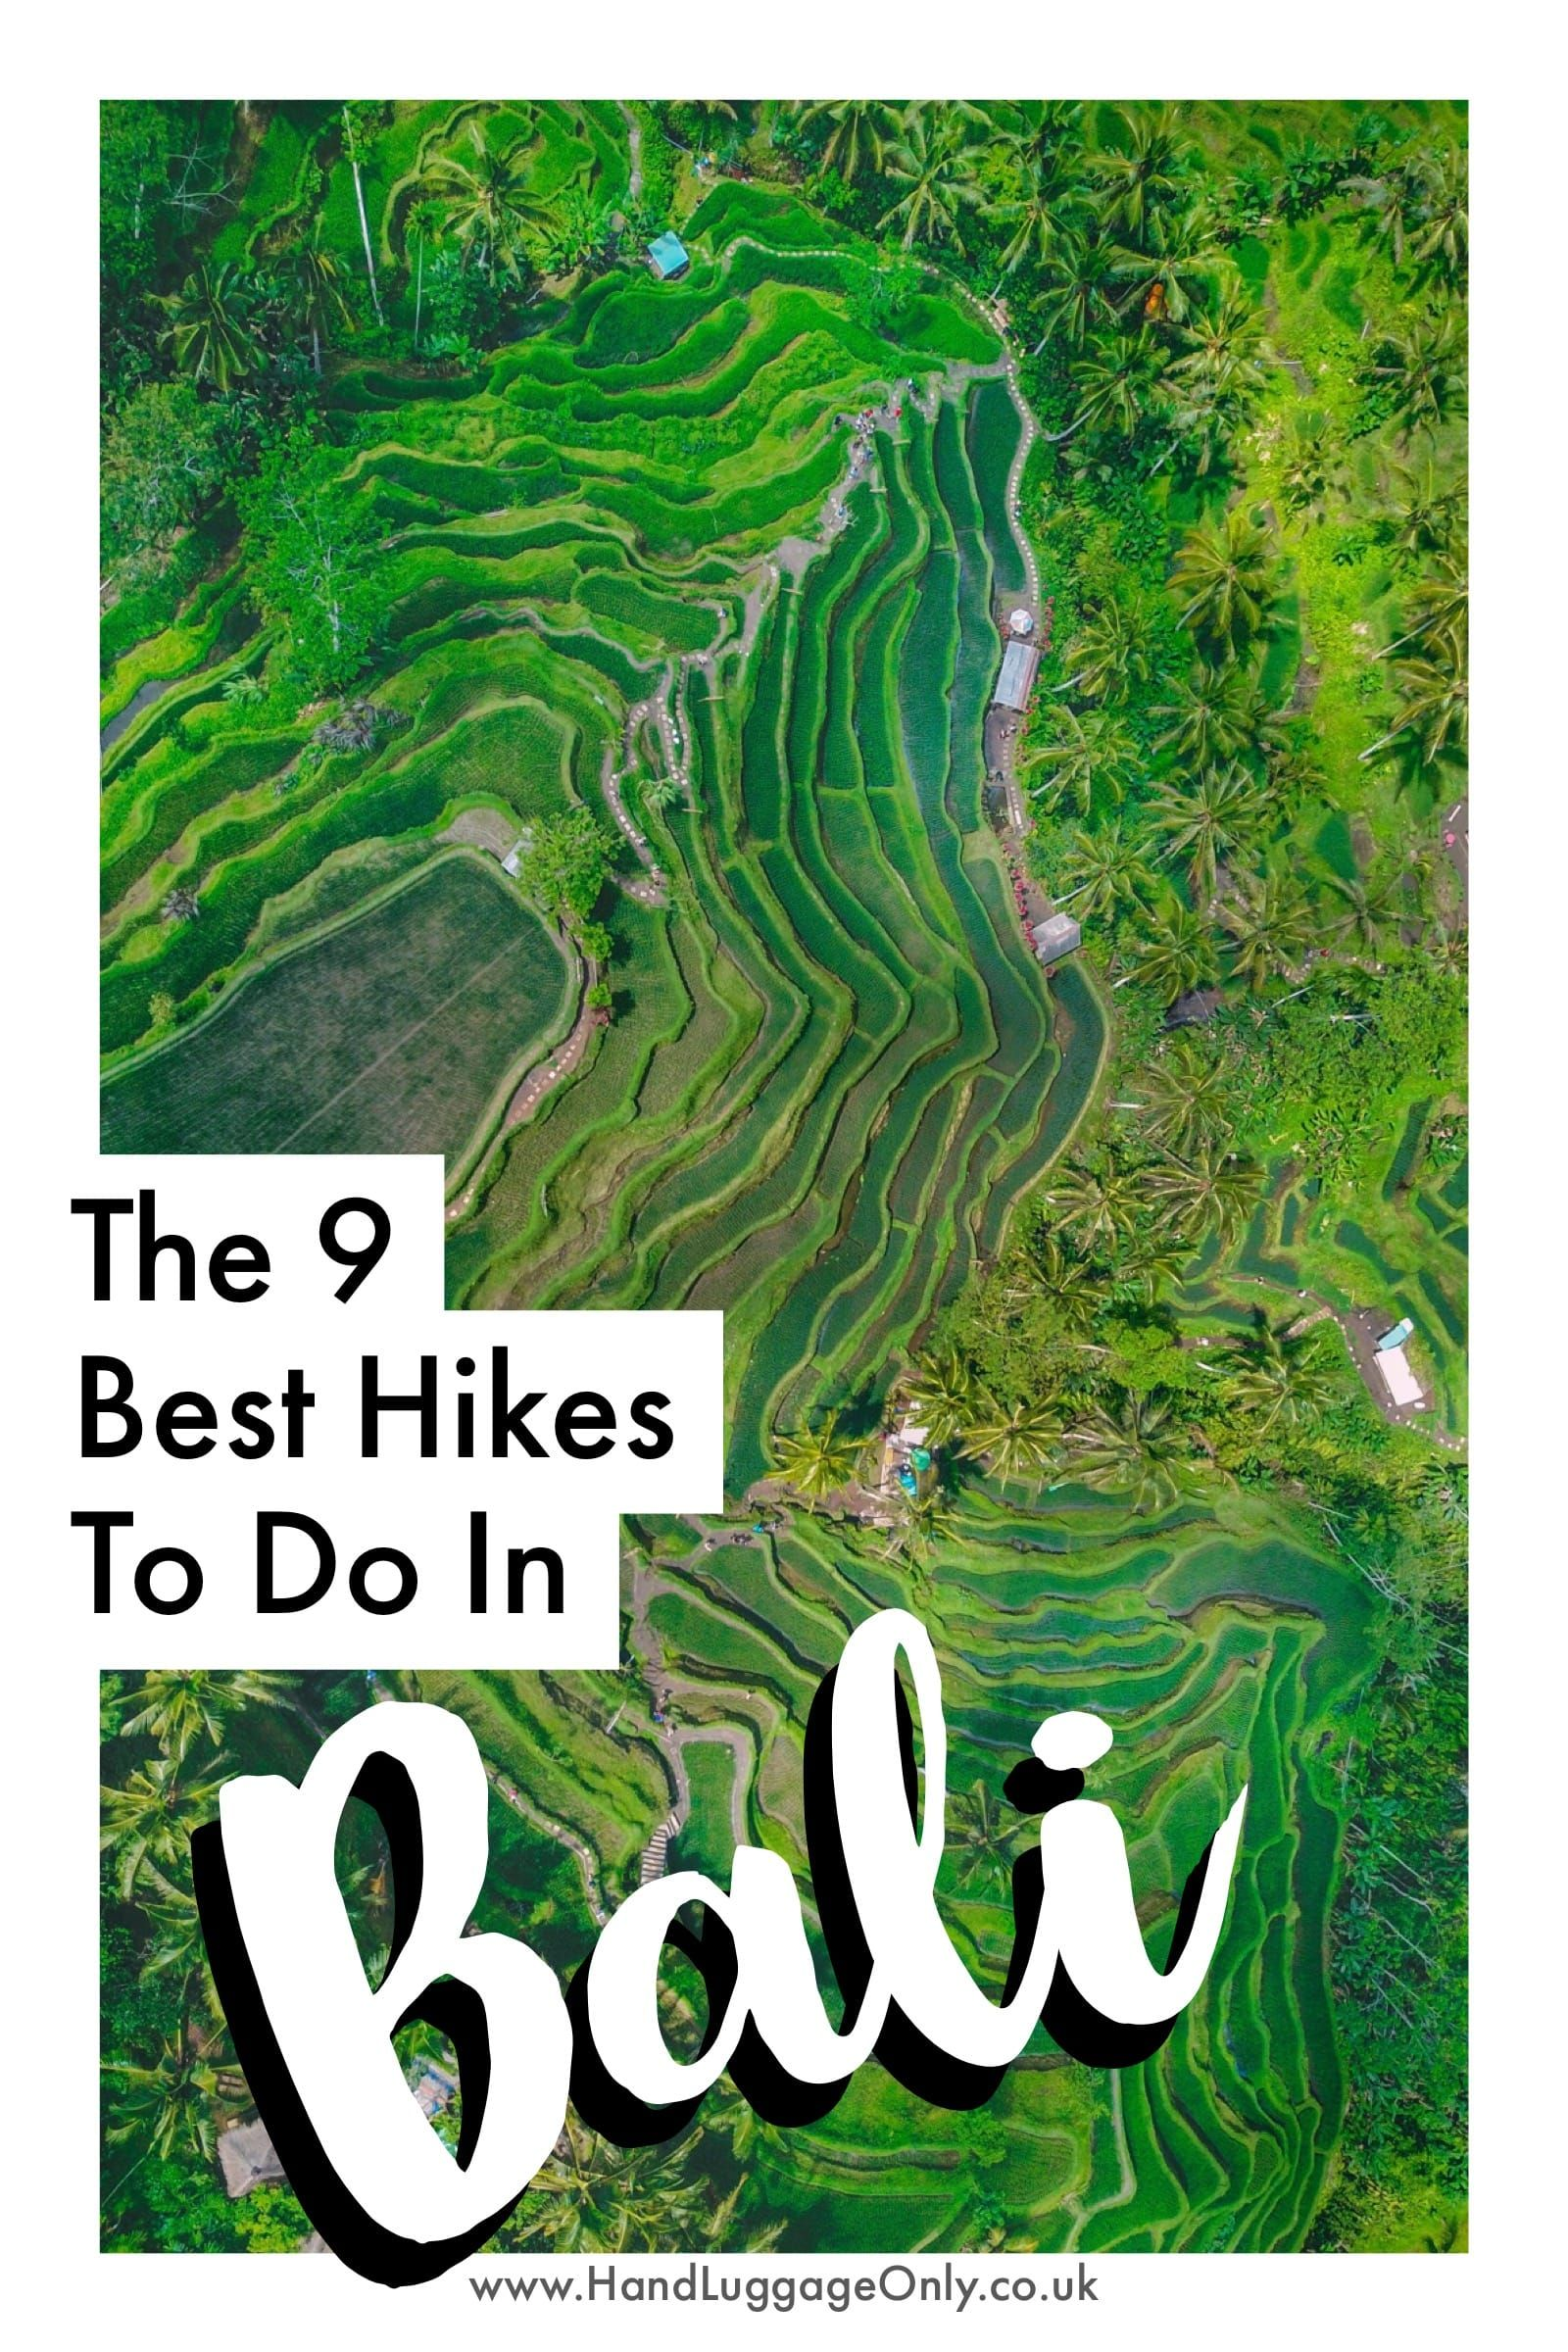 The 9 Best Hikes In Bali You Have To Experience